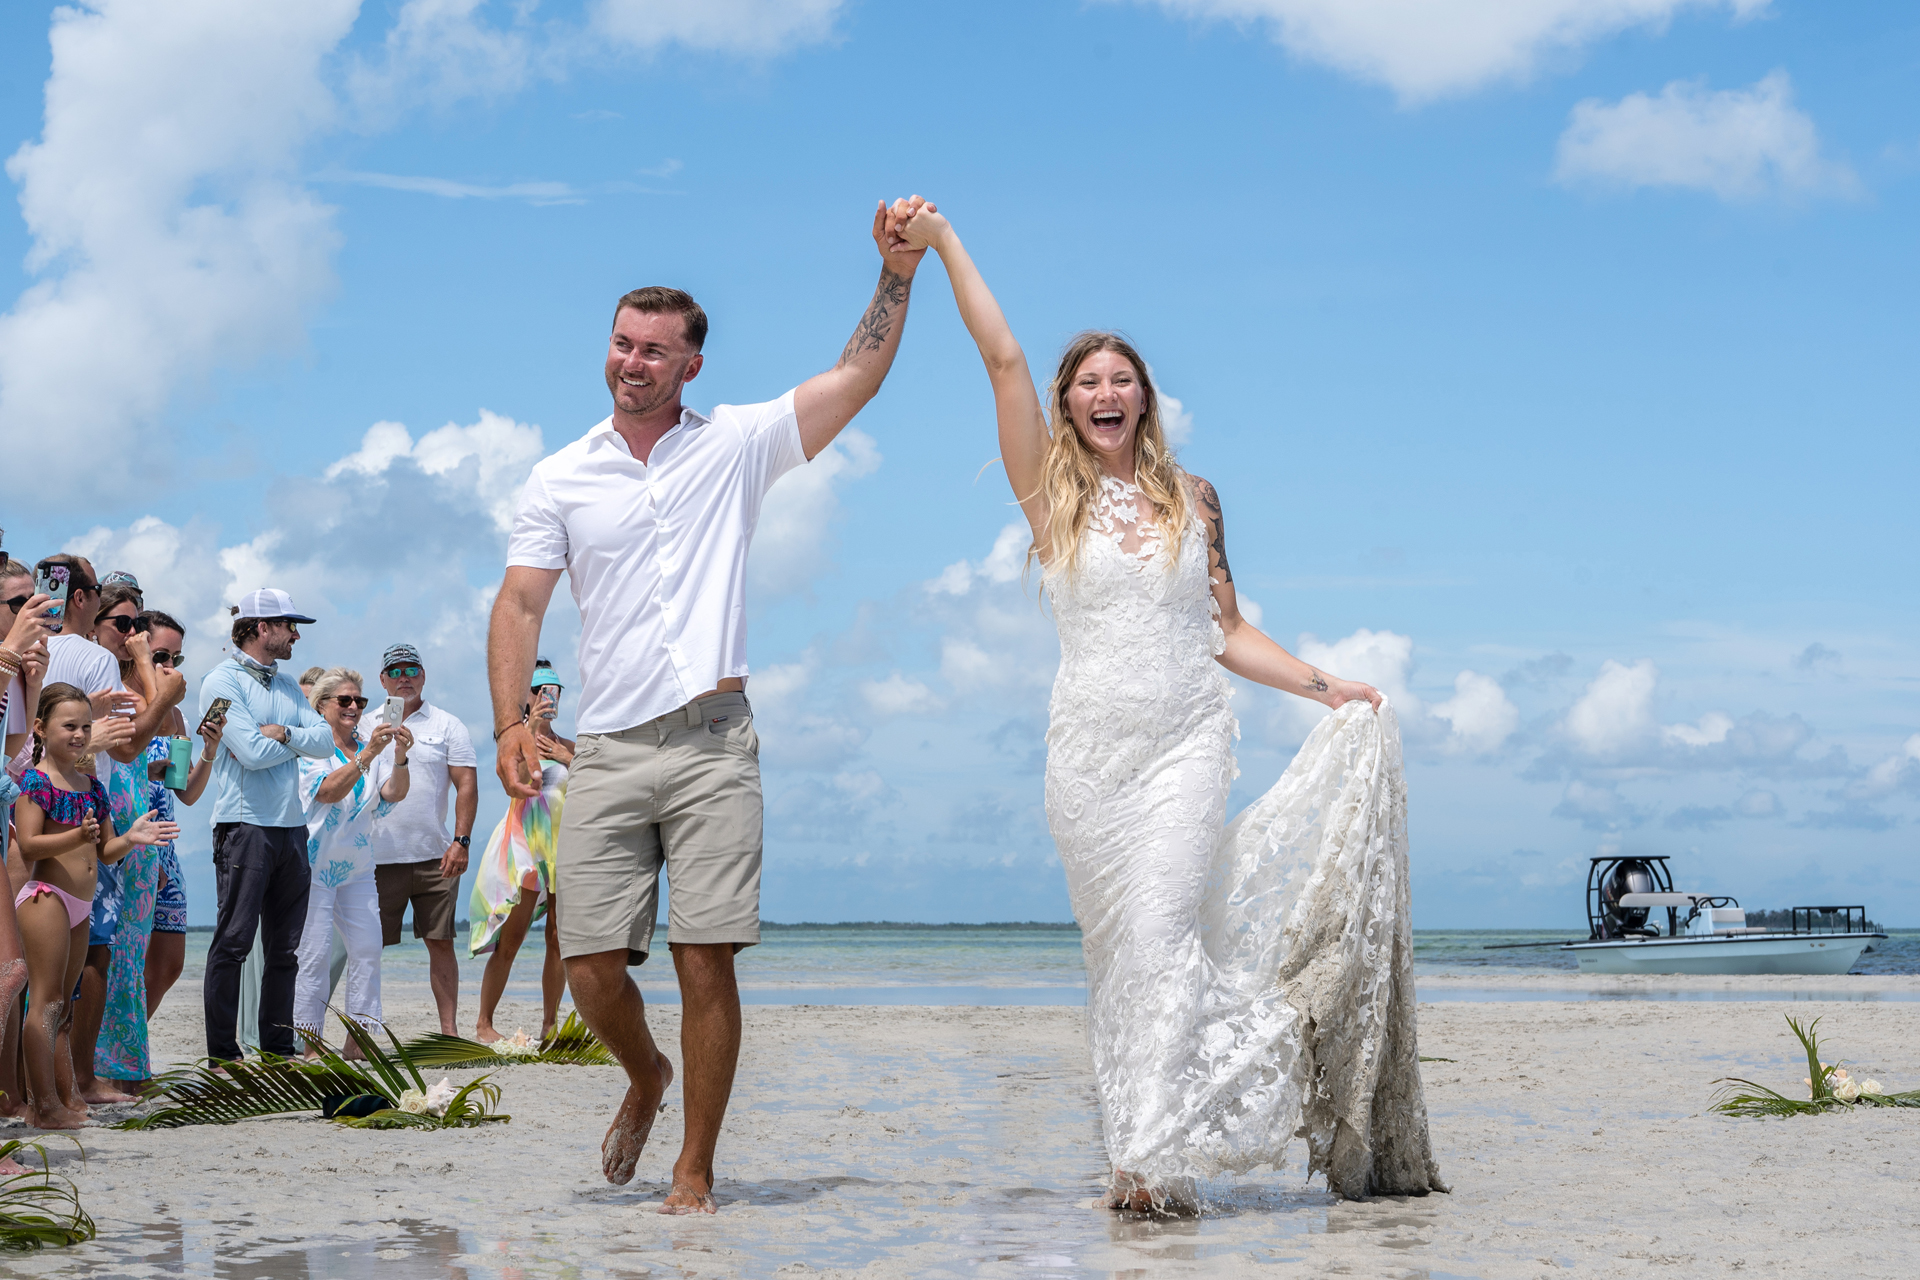 Florida Wedding Photography, Key West Elopements | The couple is shocked by how many beach bystanders came to give their congratulations